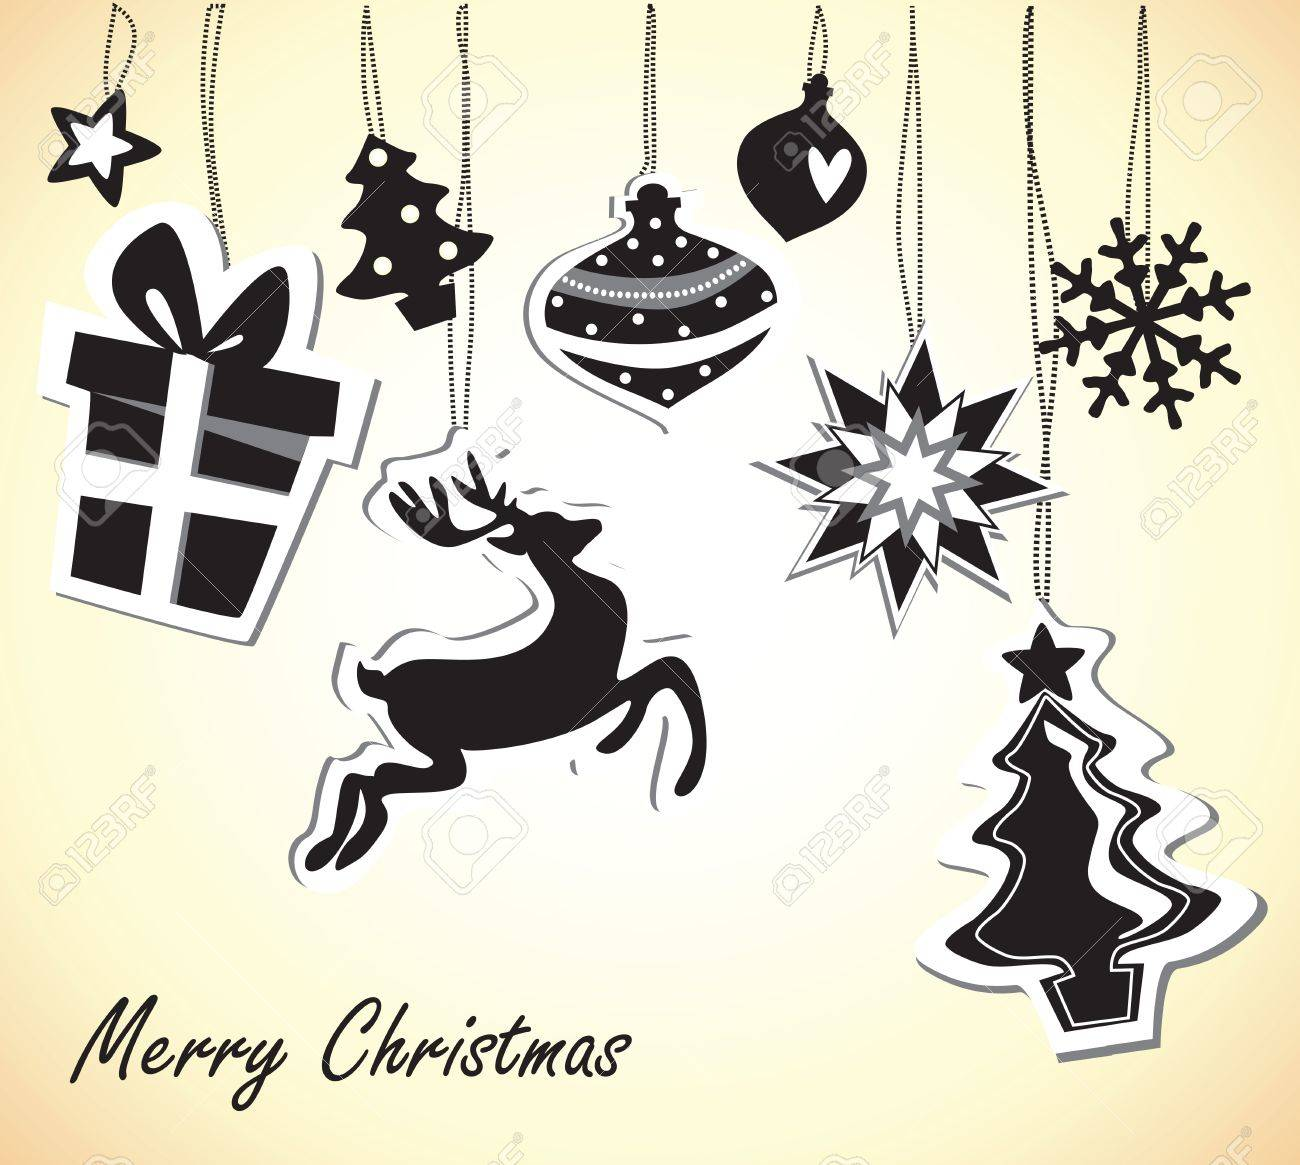 Christmas Card With Black And White Elements Stock Vector